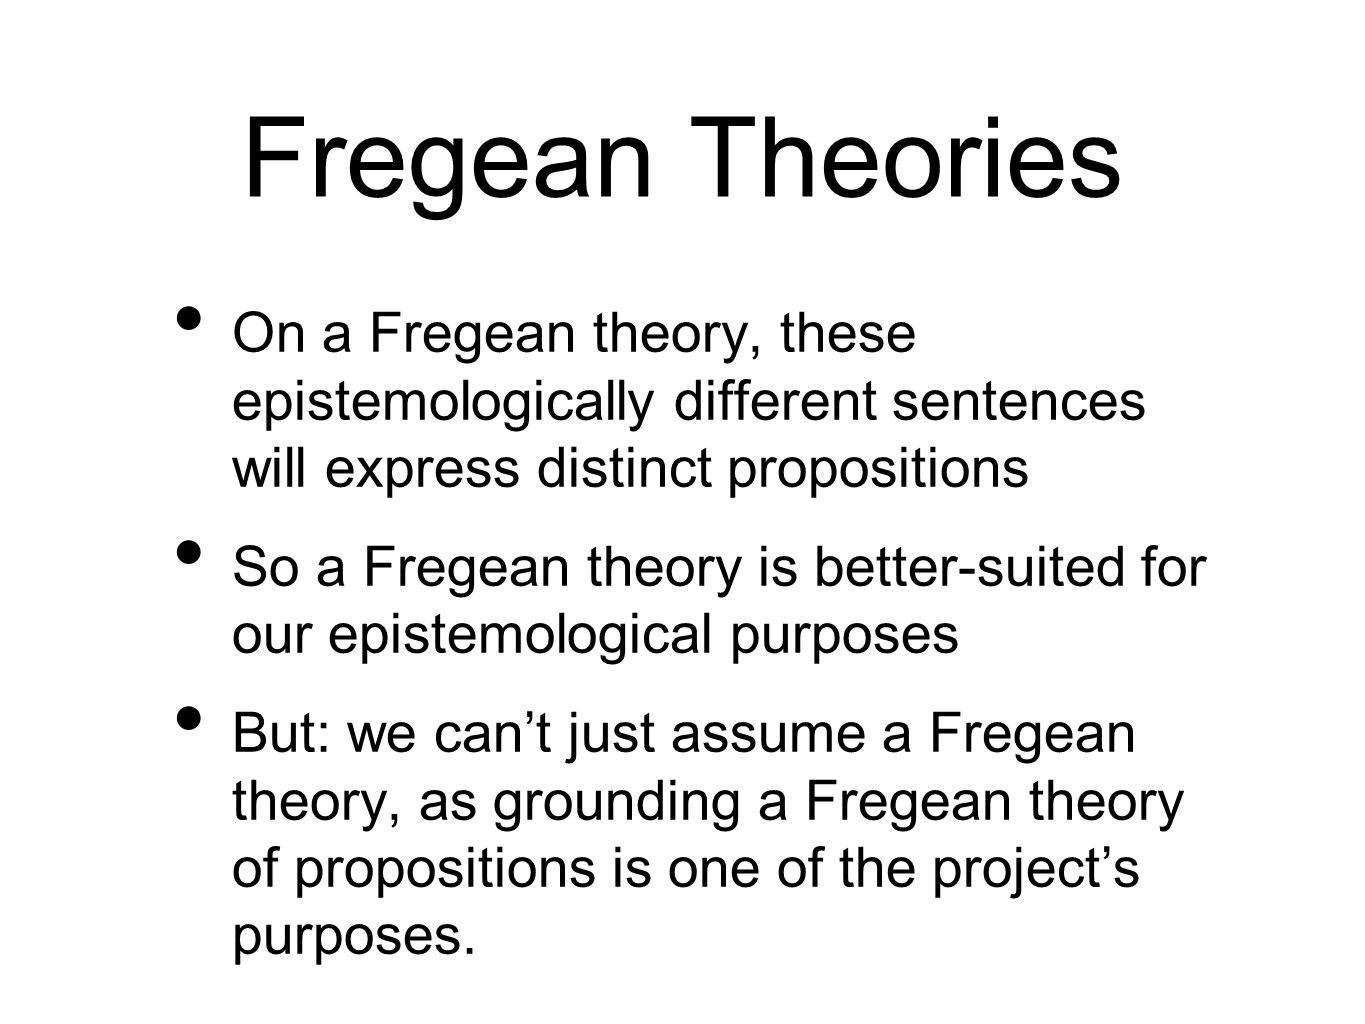 Fregean Theories On a Fregean theory, these epistemologically different sentences will express distinct propositions So a Fregean theory is better-suited for our epistemological purposes But: we cant just assume a Fregean theory, as grounding a Fregean theory of propositions is one of the projects purposes.